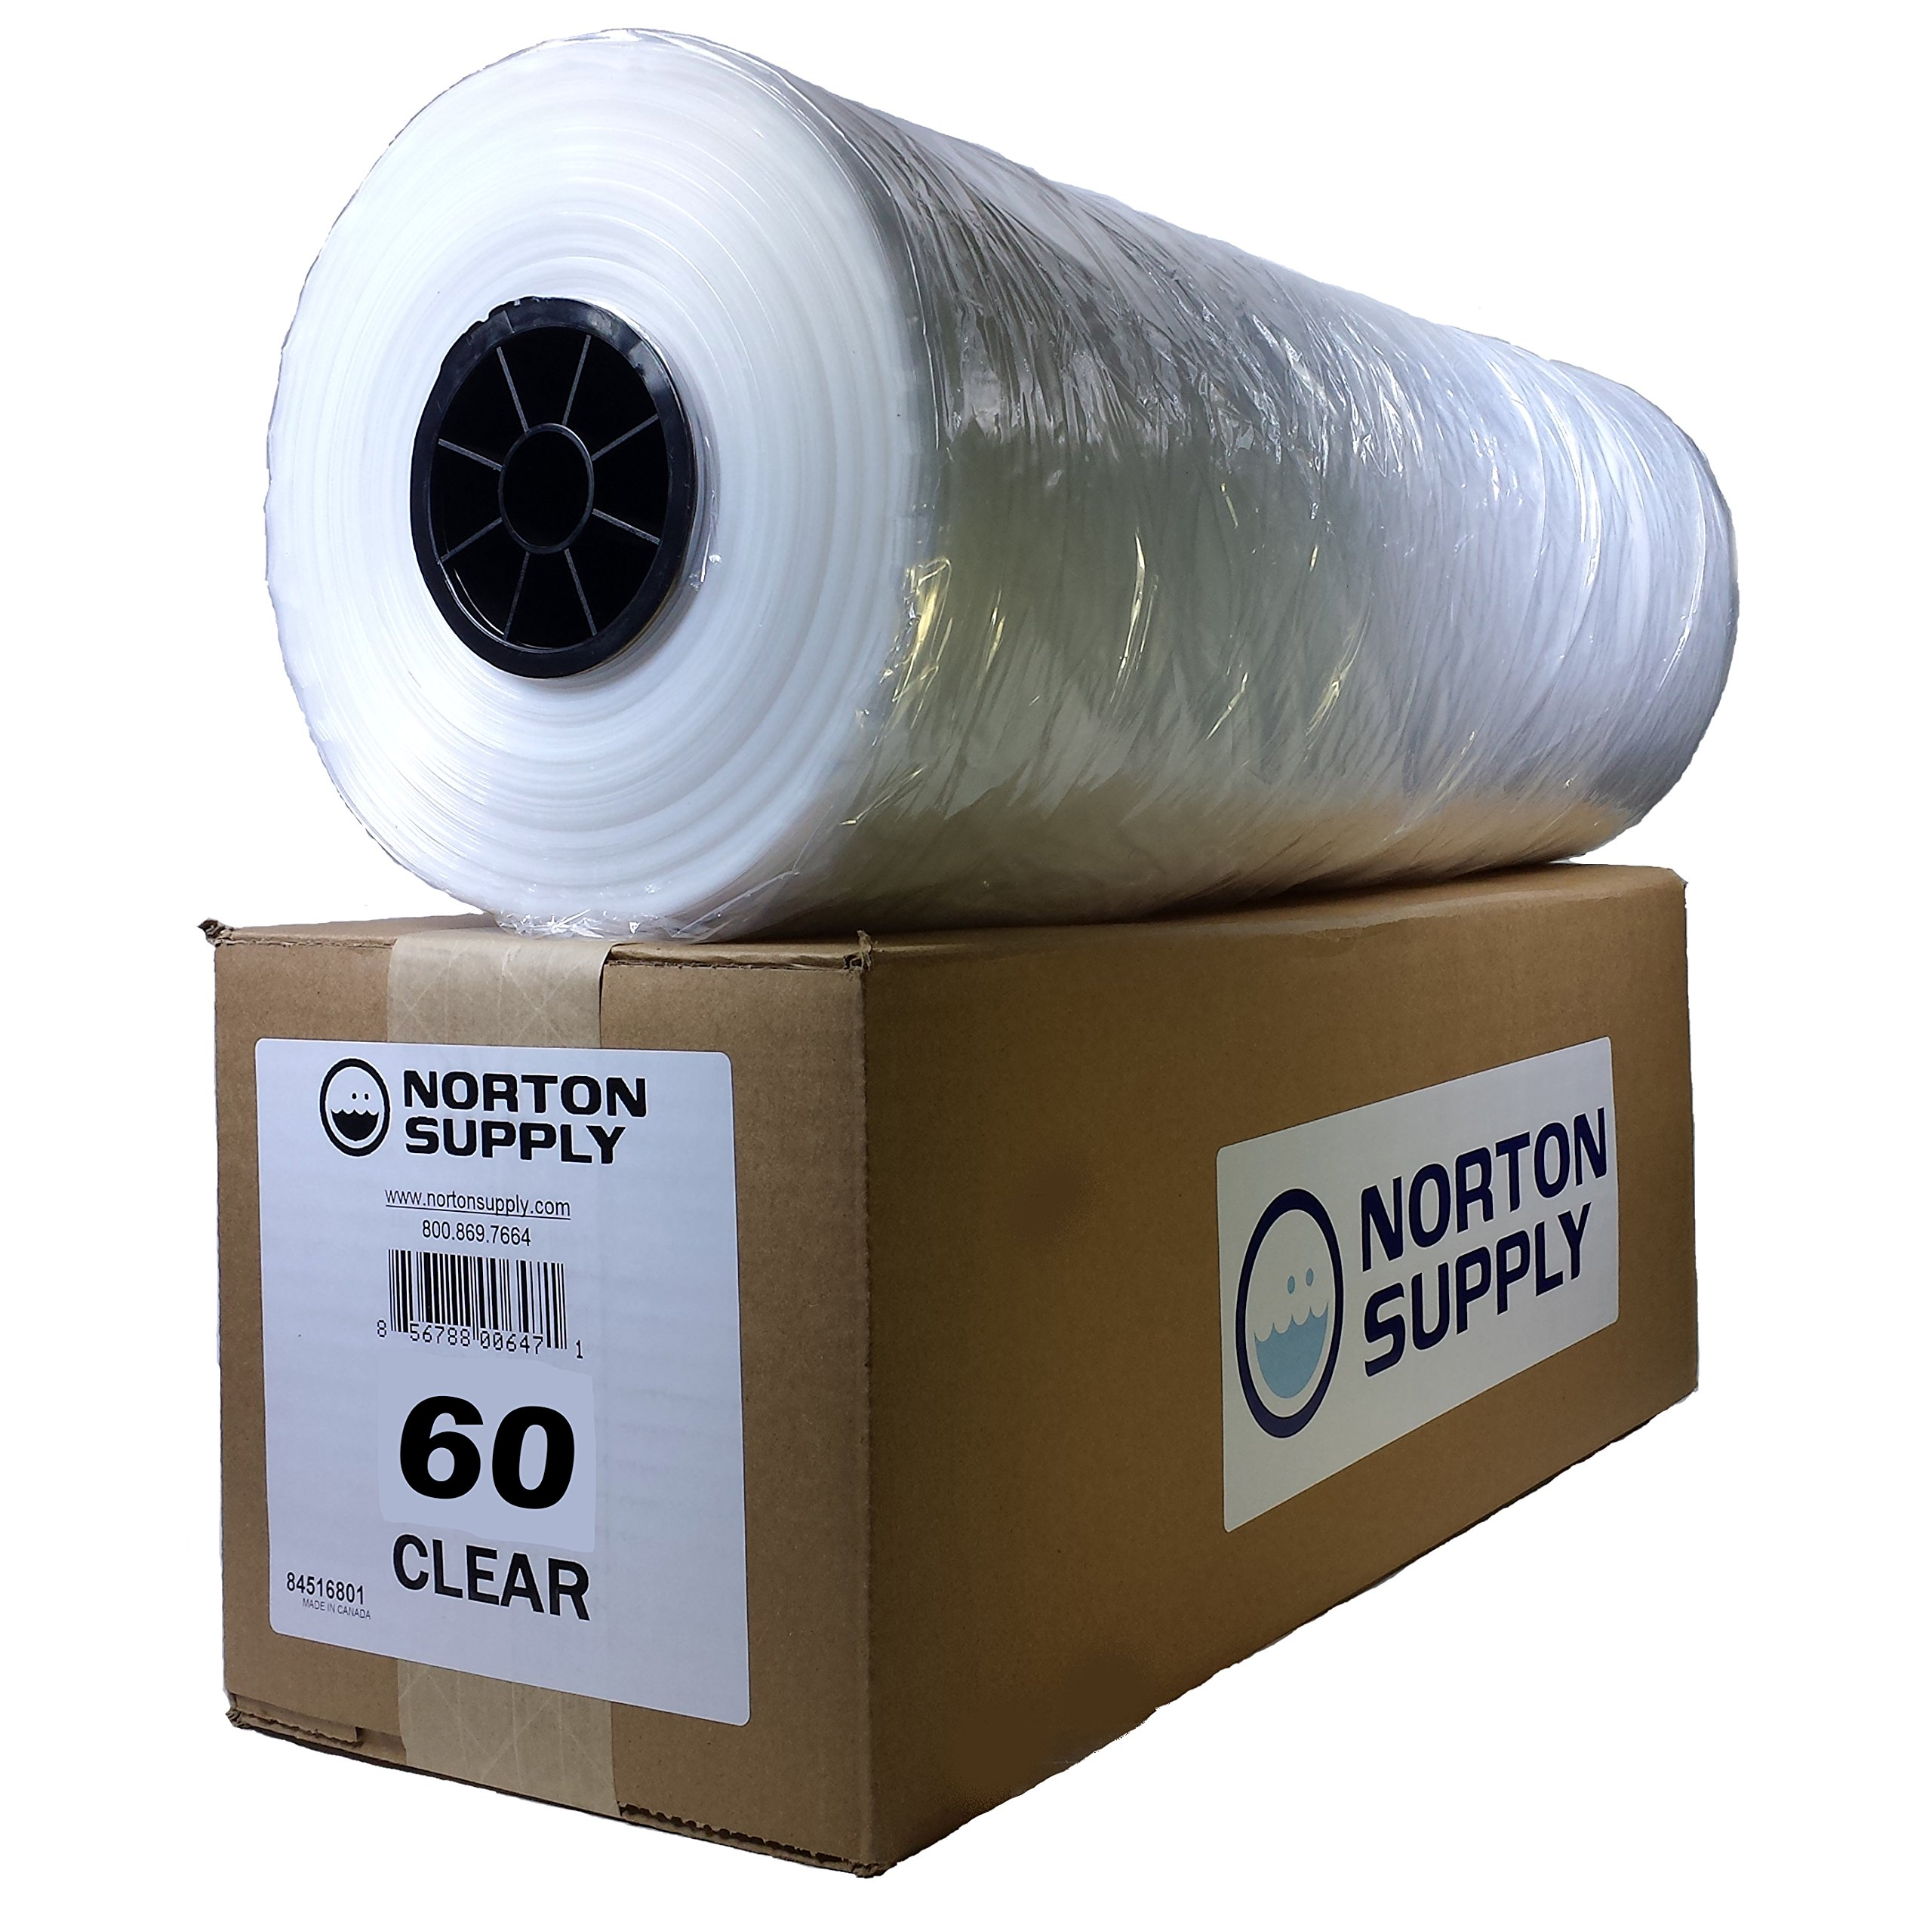 Norton Supply Dry Cleaning Poly Bags - 60'', 100 Gauge